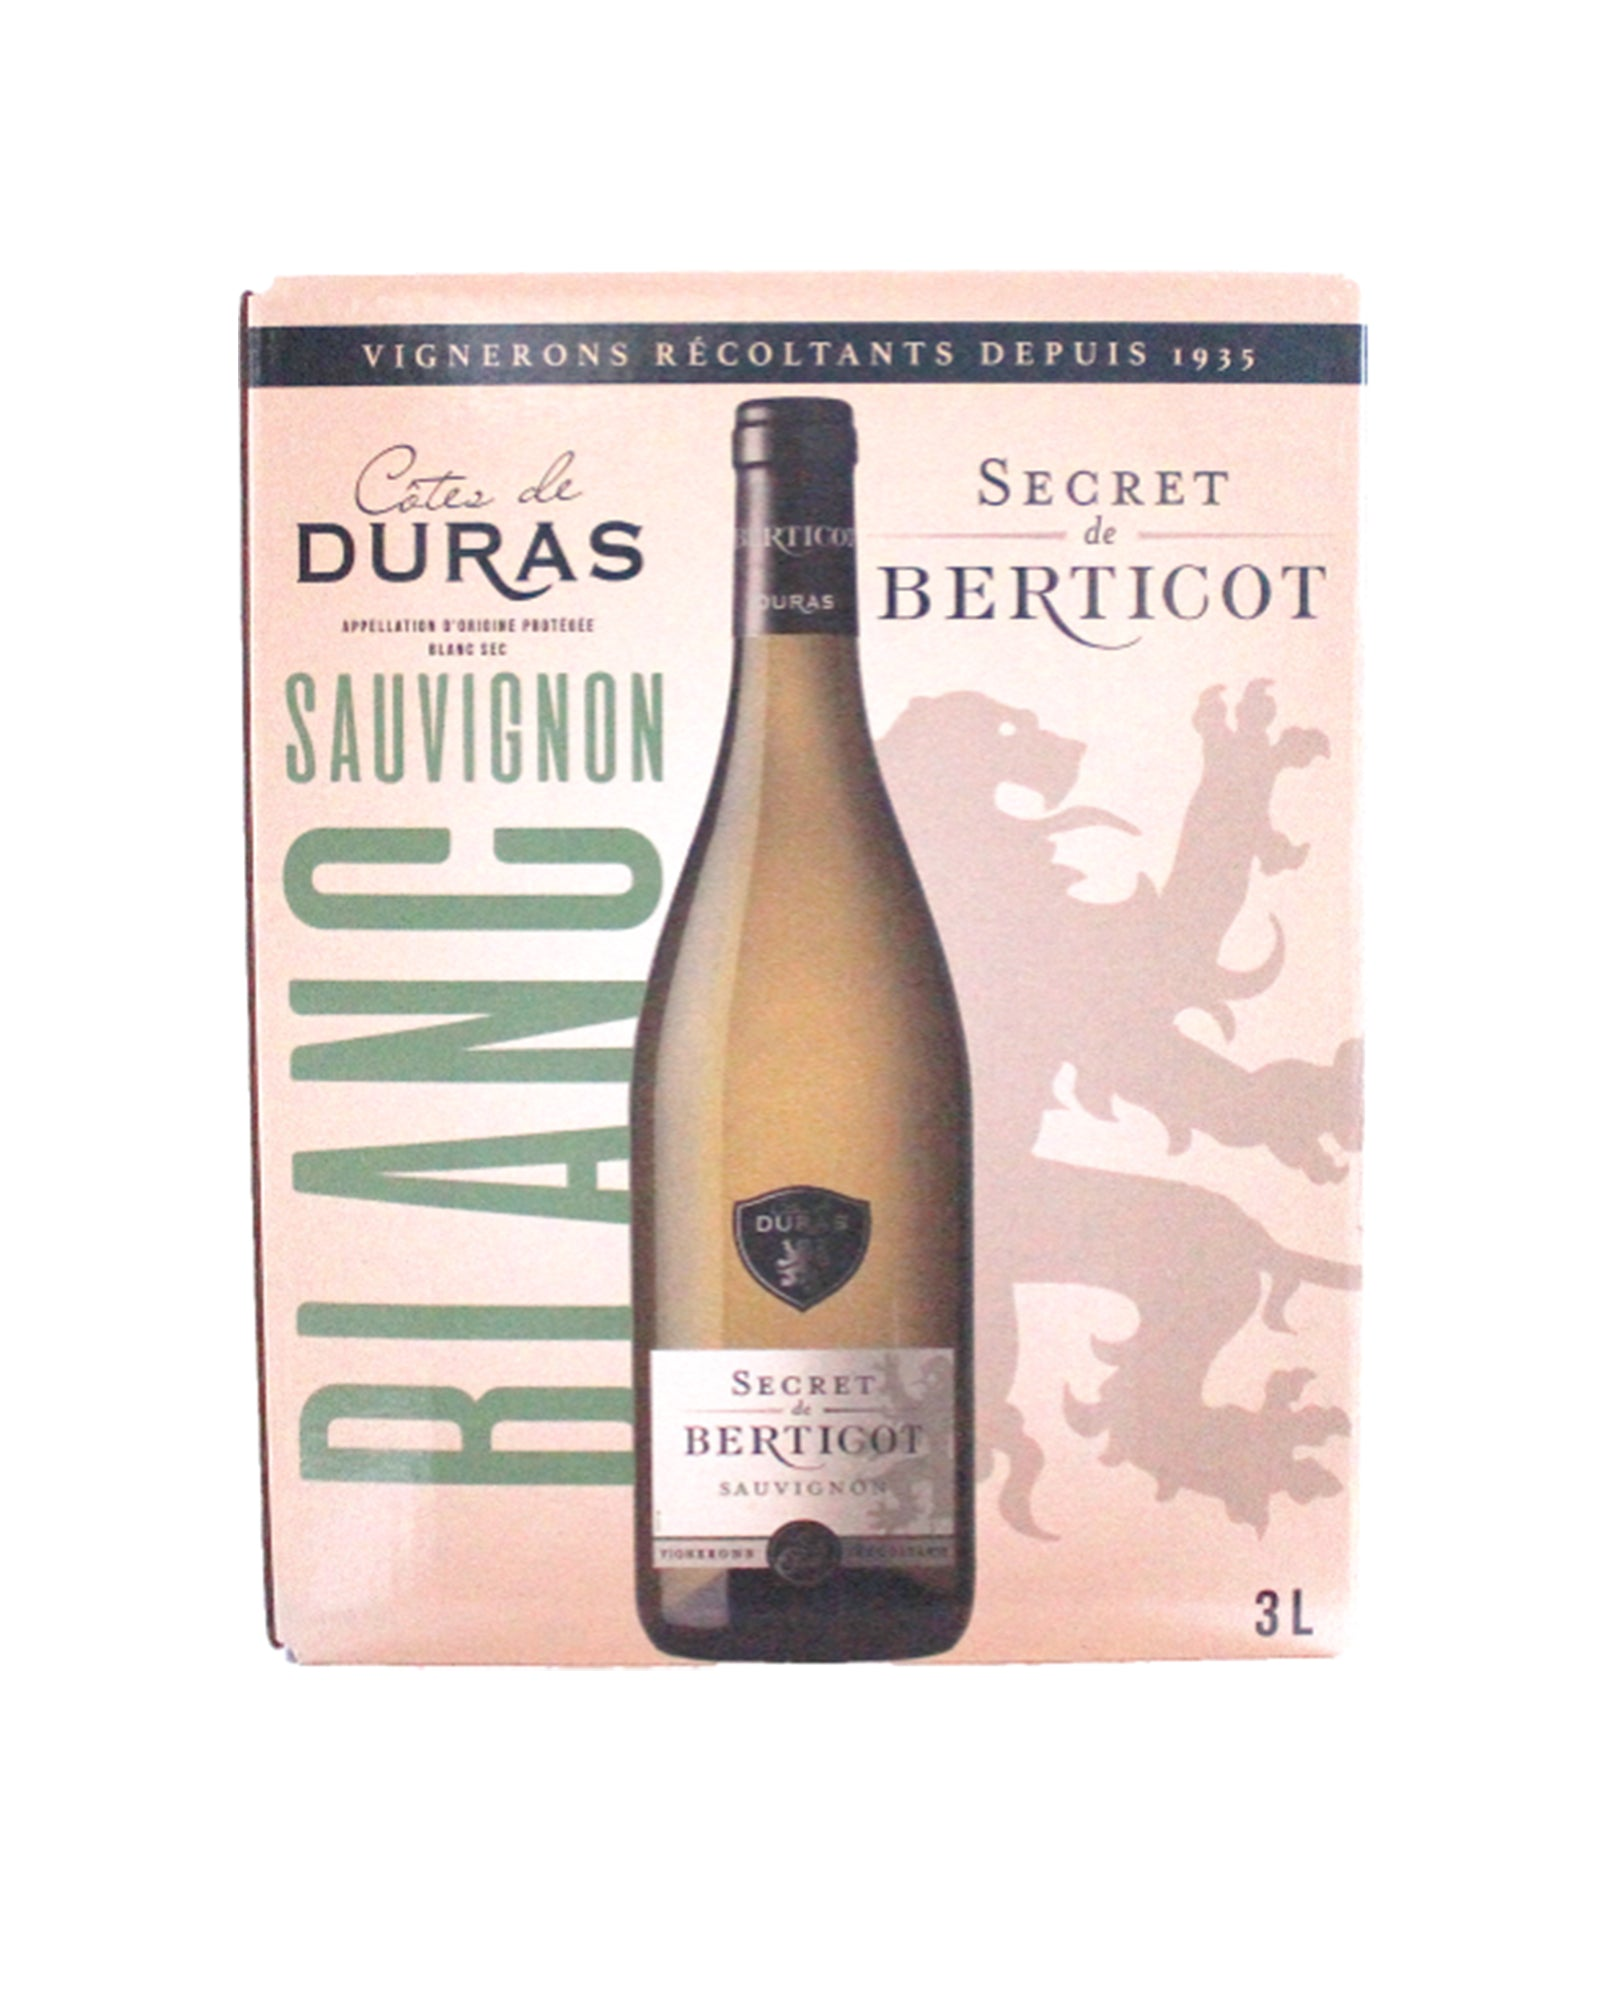 Côtes-De-Duras sauvignon blanc Secret de Berticot bag in Box 3 litres